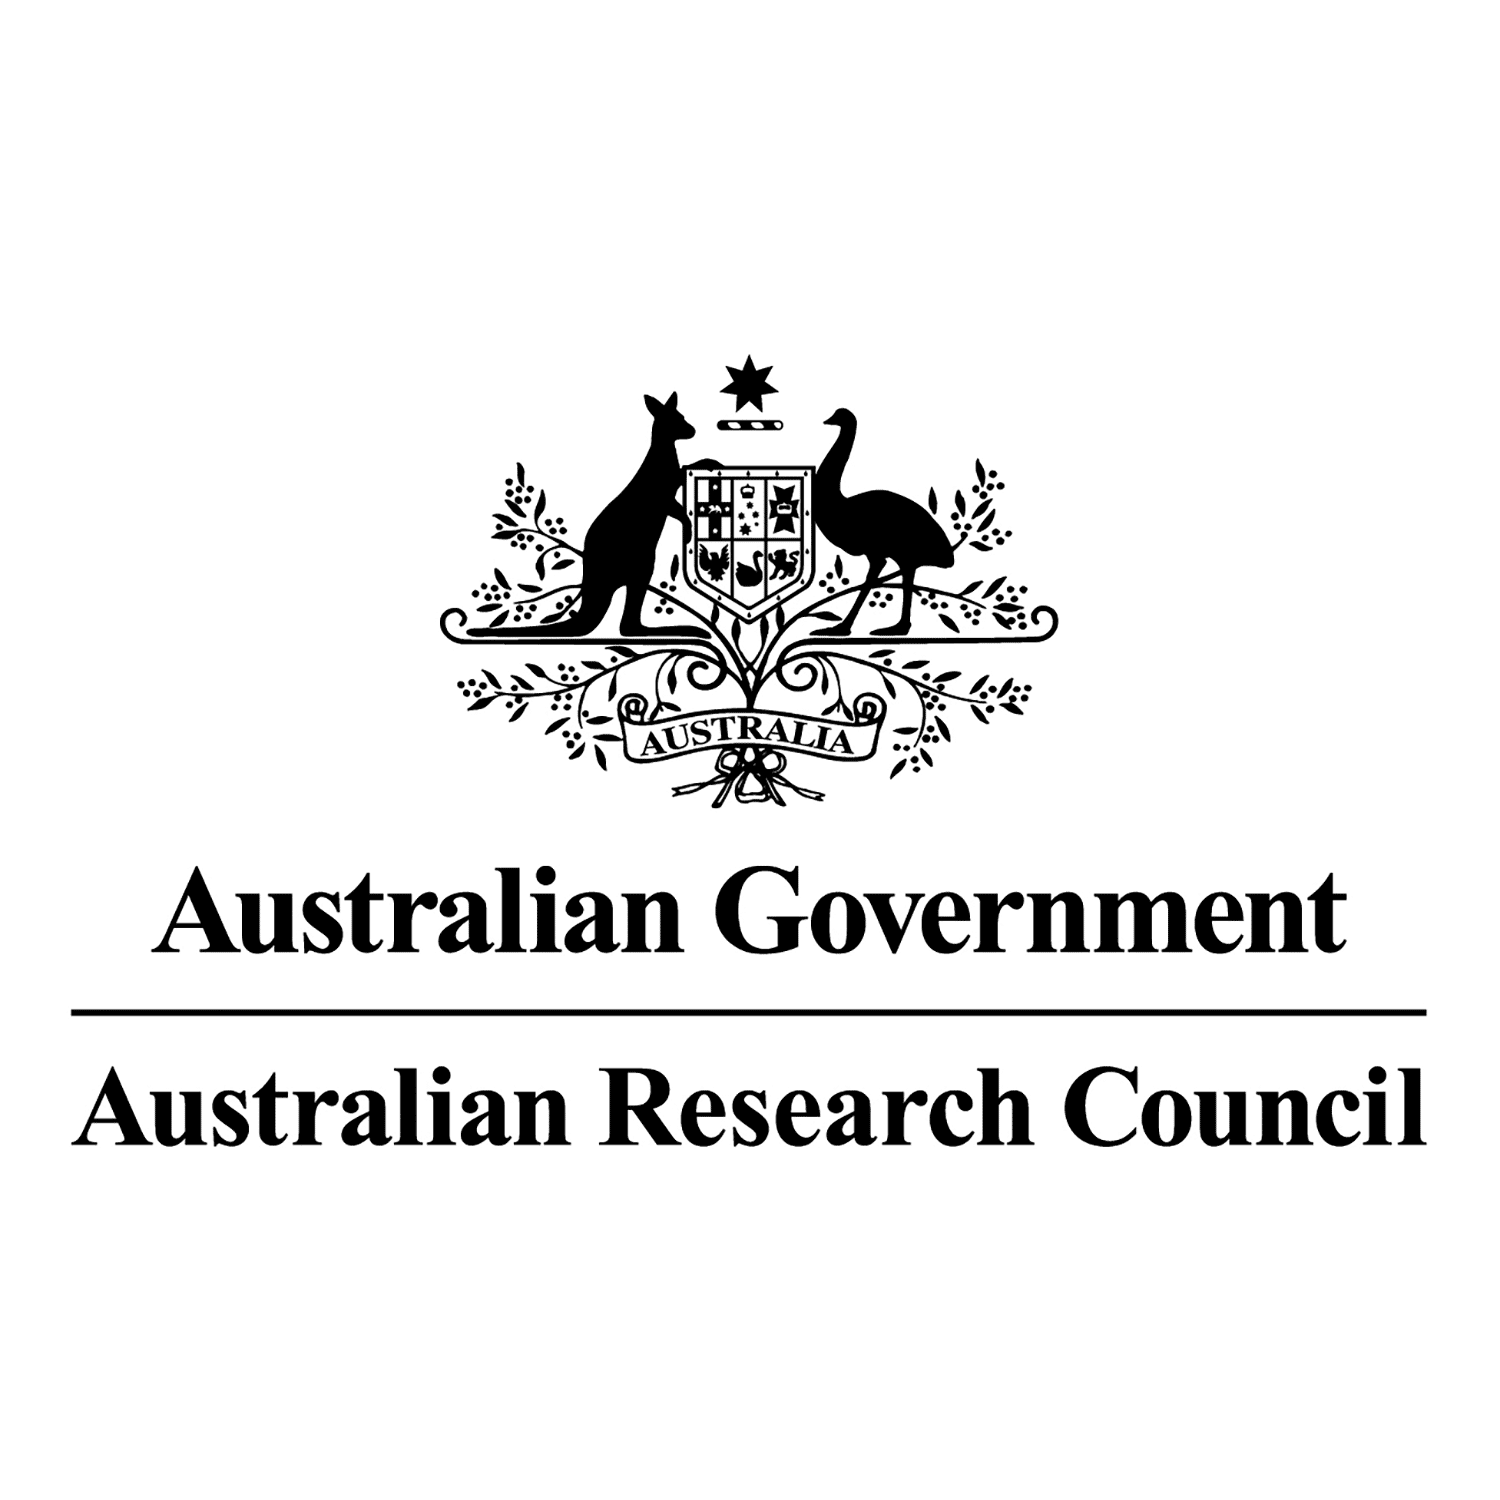 Australian Research Council (ARC)